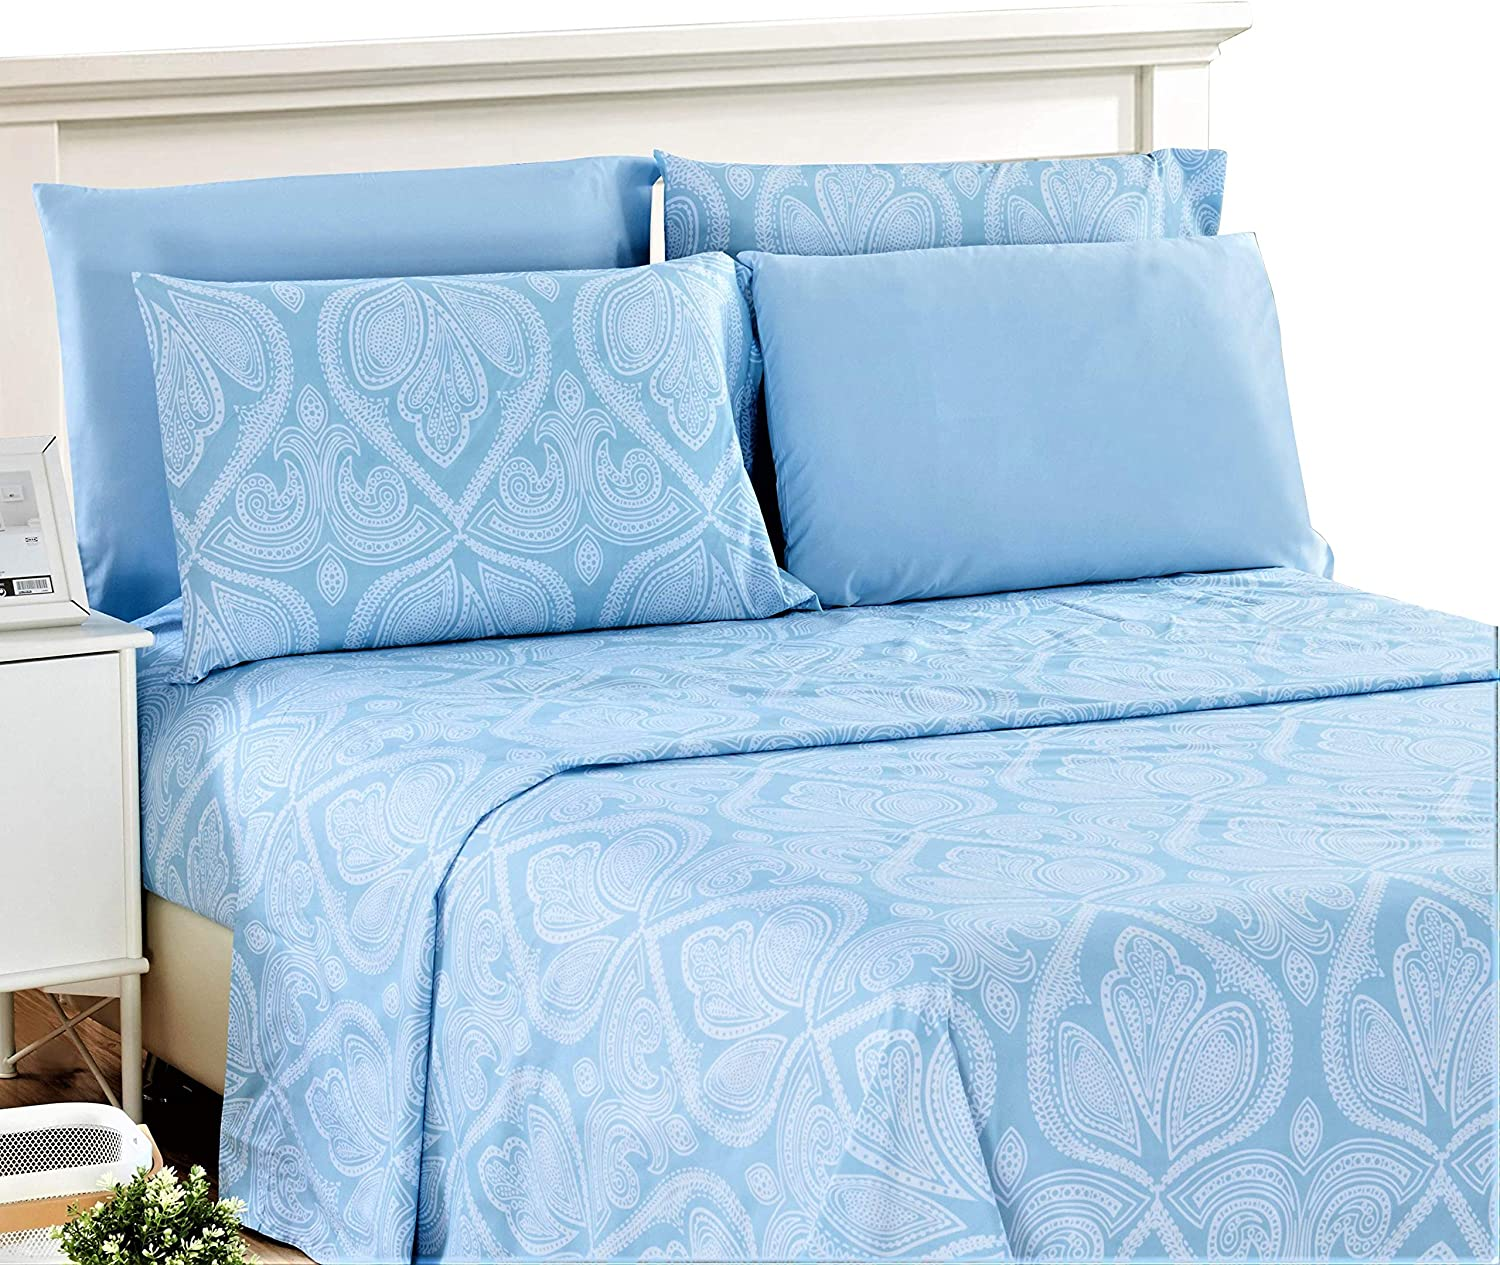 Lux Decor Collection Bed Sheet Set - Brushed Microfiber 1800 Thread Count Bedding - Wrinkle, Stain, Fade Resistant & Hypoallergenic - Deep Pocket King Size Sheets Set - 6 PC (King, Paisley Blue)